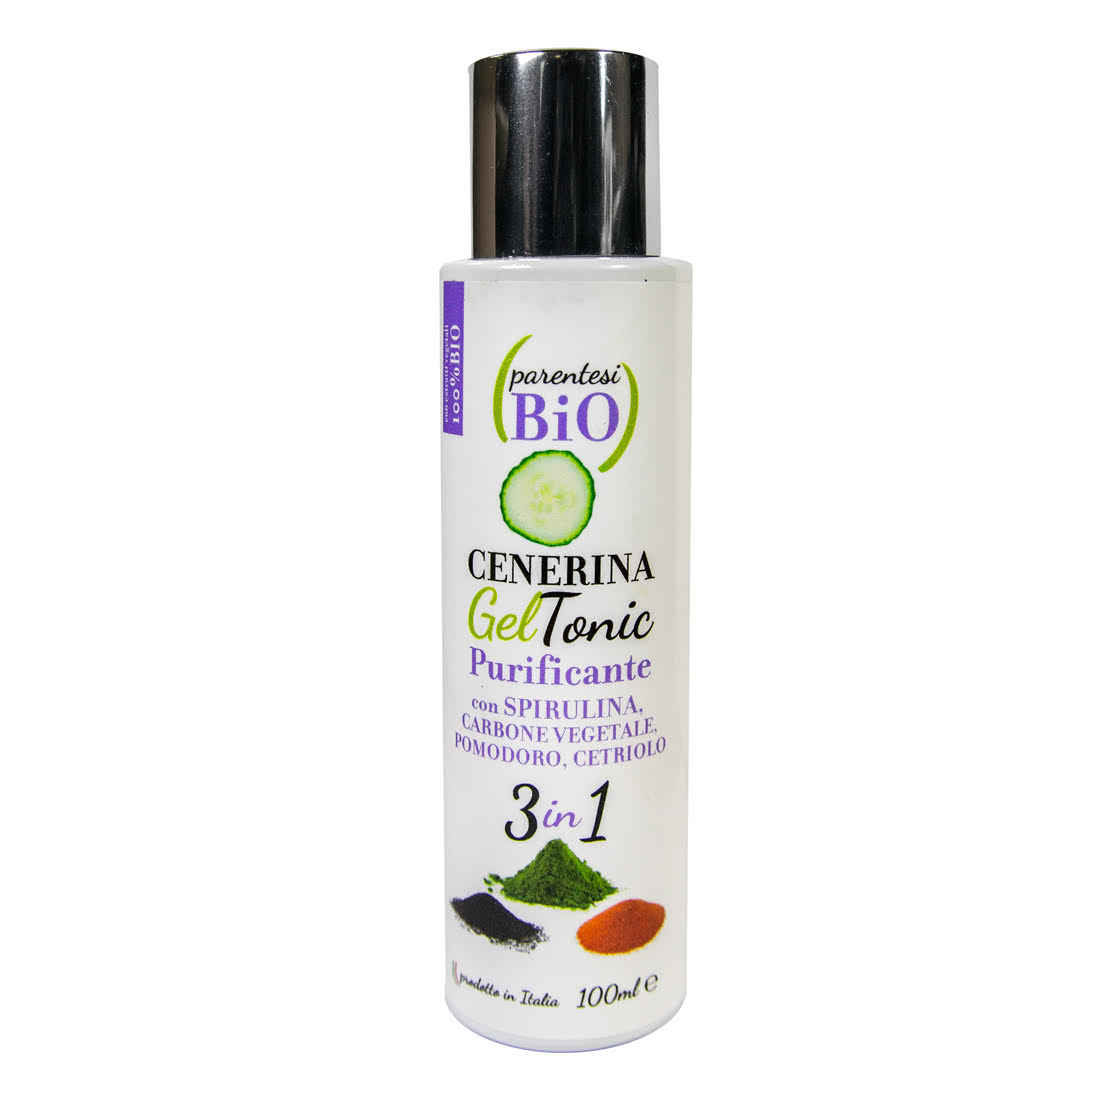 parentesibio cenerina gel tonic